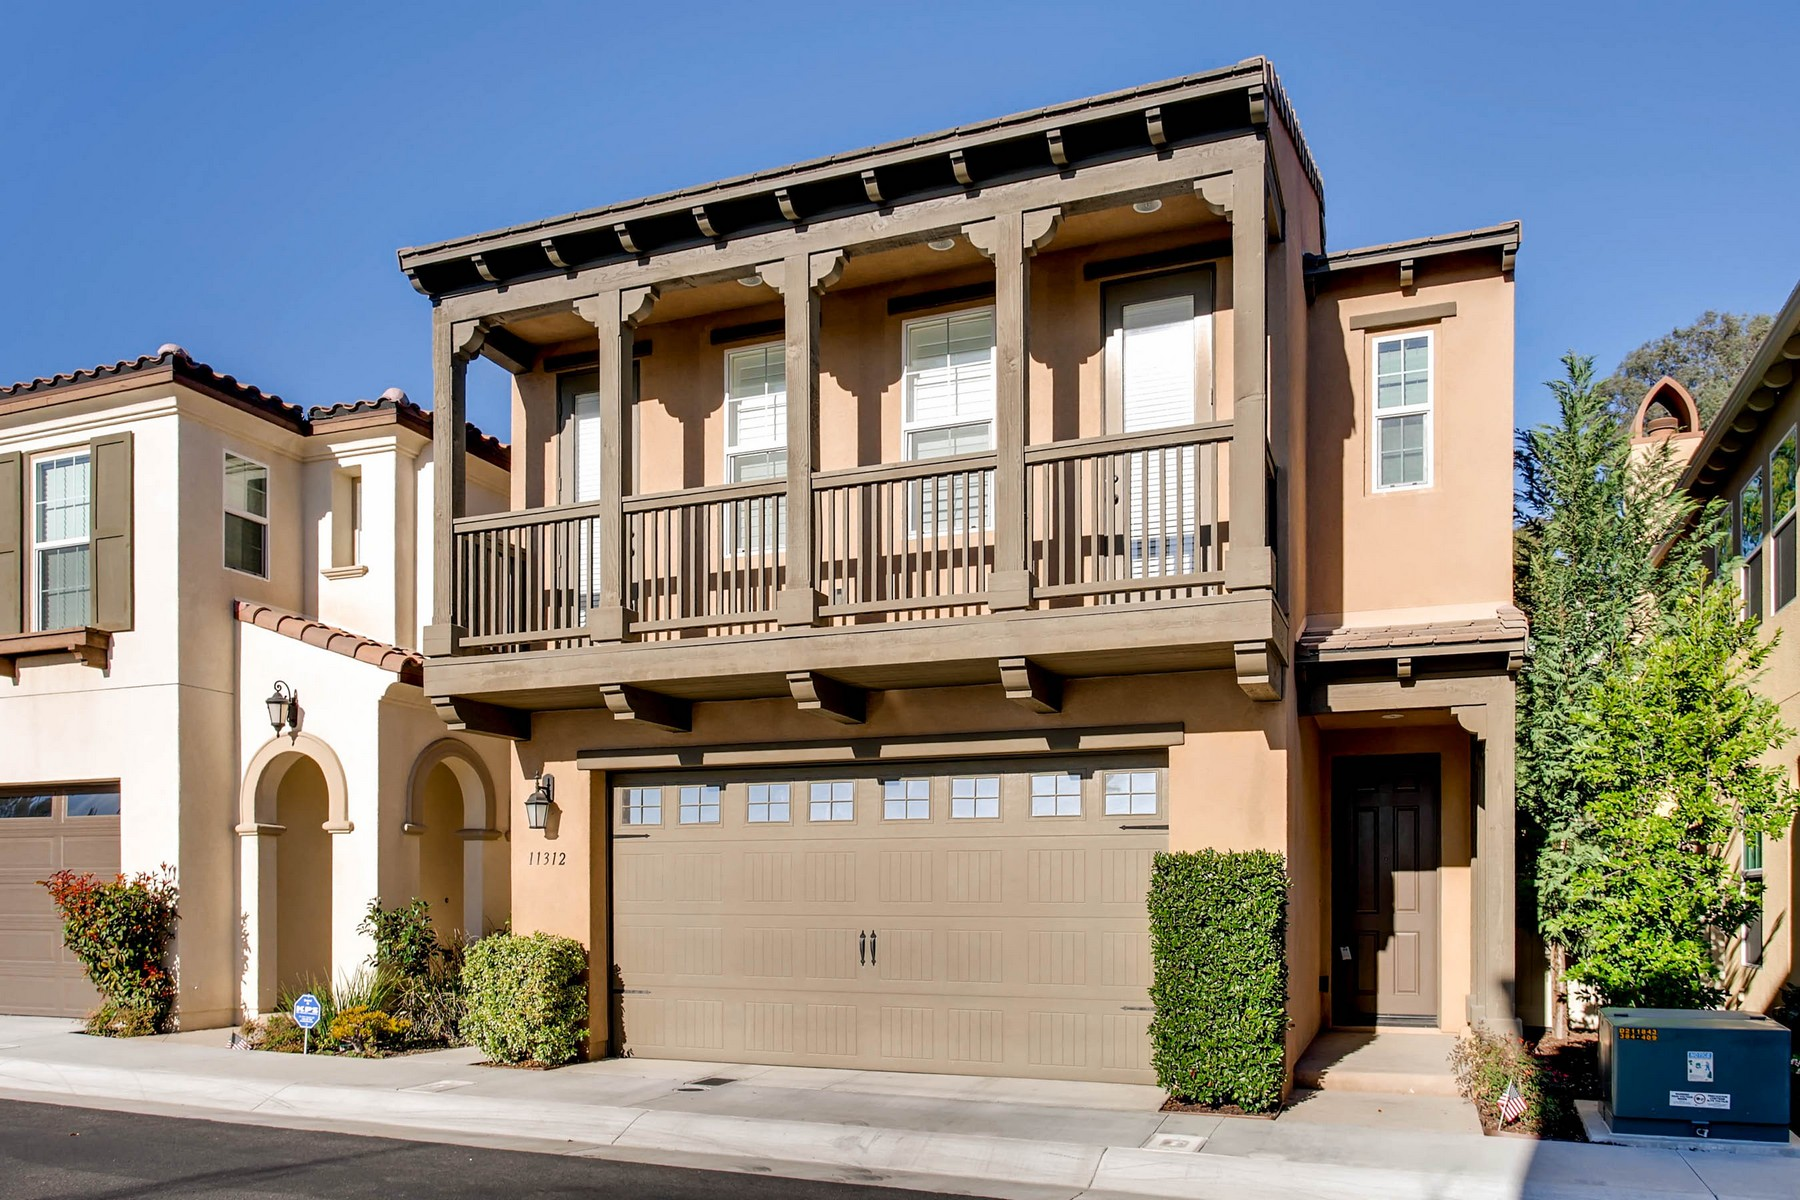 Single Family Home for Sale at 11312 Cooperleaf Lane San Diego, California 92124 United States